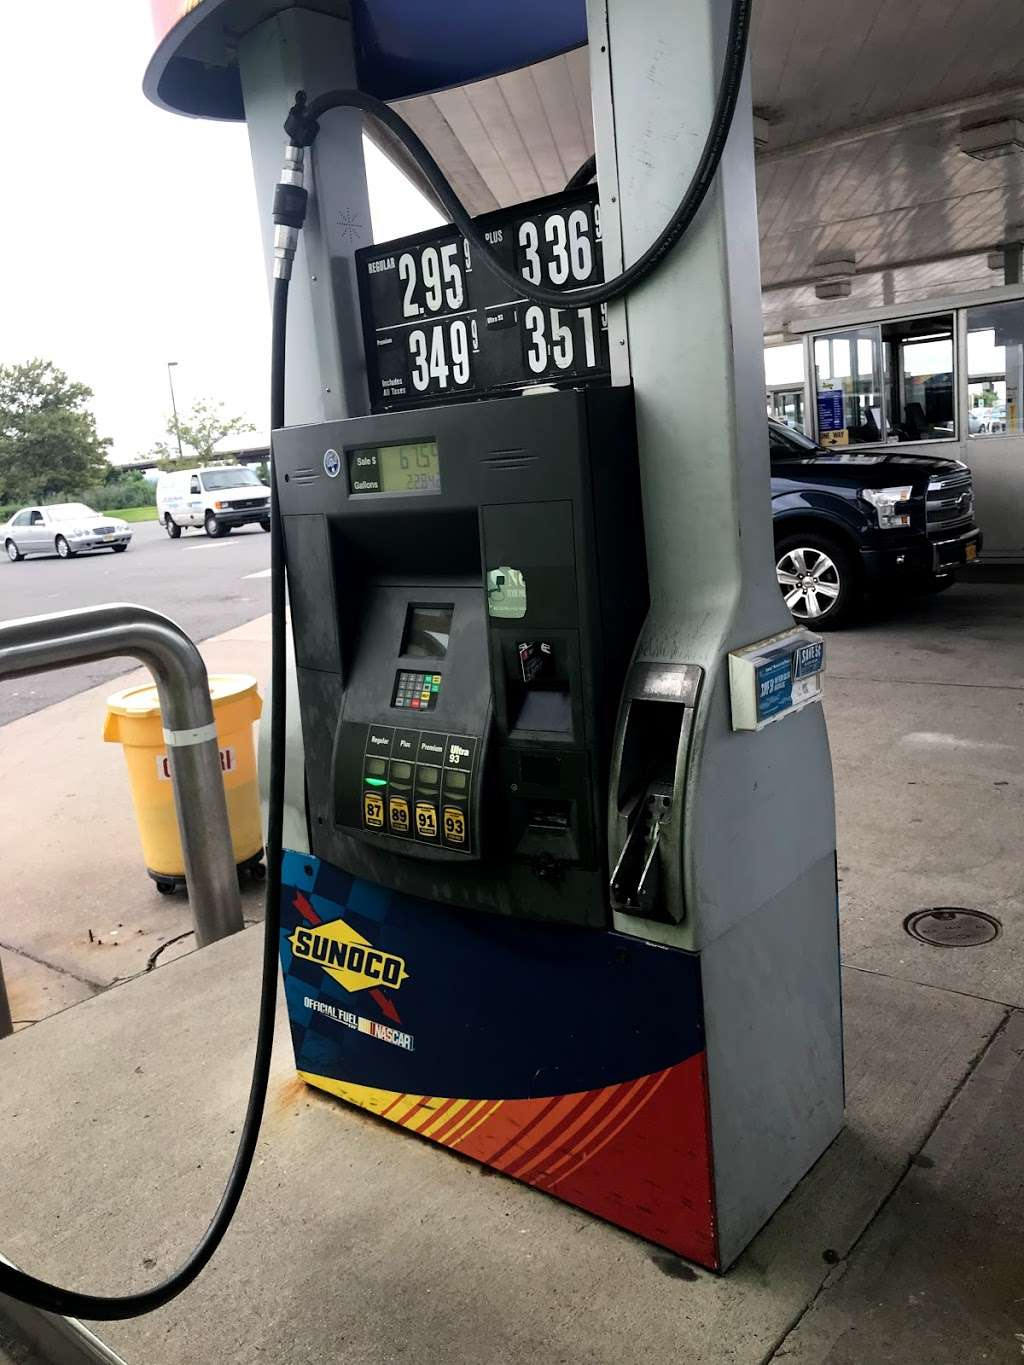 Sunoco - gas station  | Photo 2 of 10 | Address: 166 NJ Tpke, Ridgefield, NJ 07657, USA | Phone: (201) 945-8991